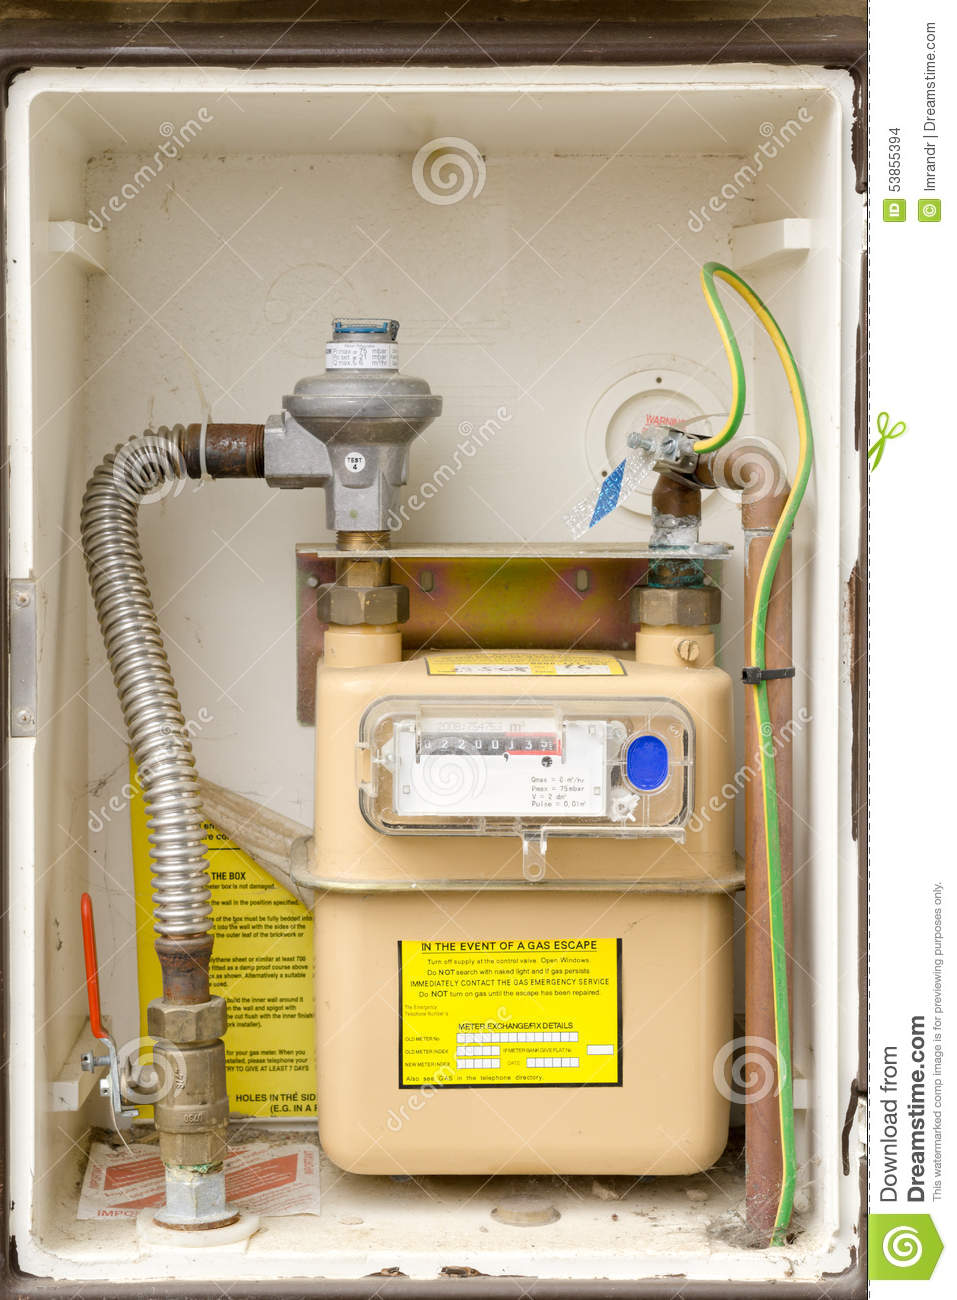 how to turn off gas meter australia